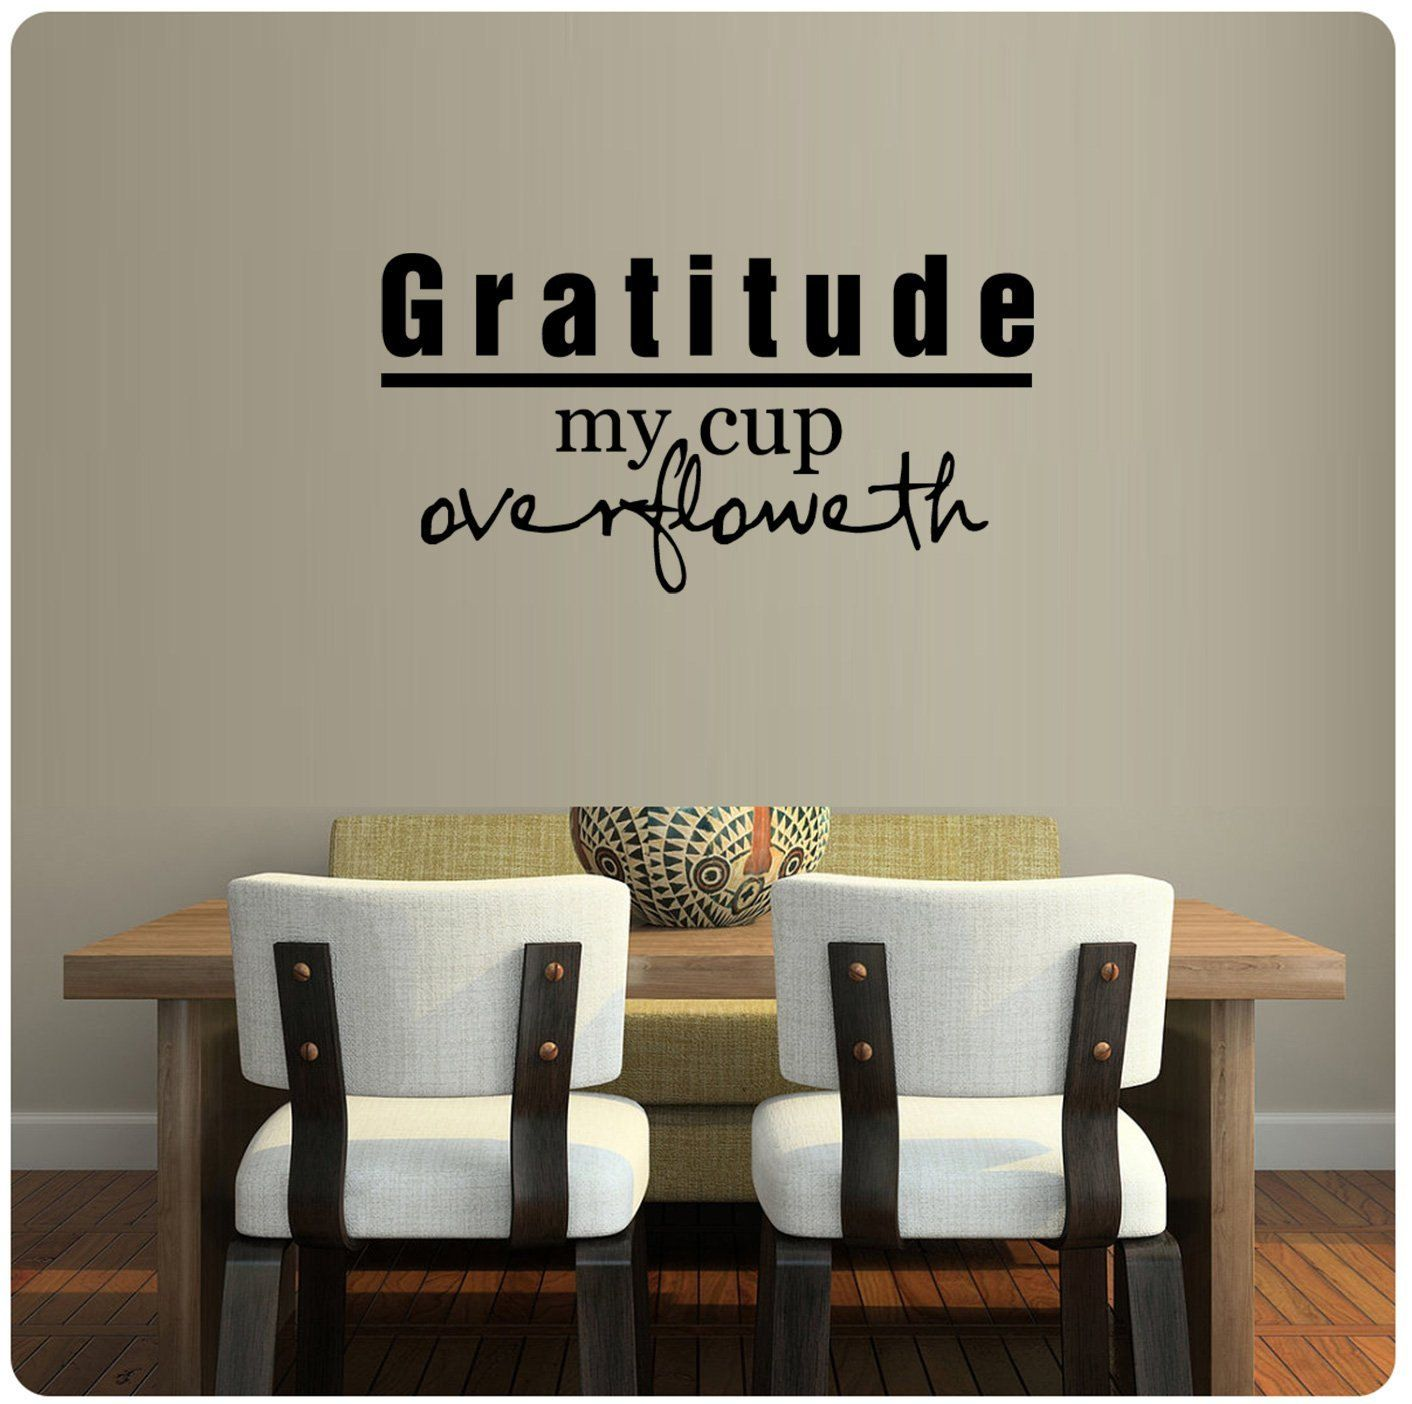 gratitude my cup over floweth by stickyforyou on etsy 10 99 kitchen wall stickers wall on kitchen decor quotes wall decals id=37985